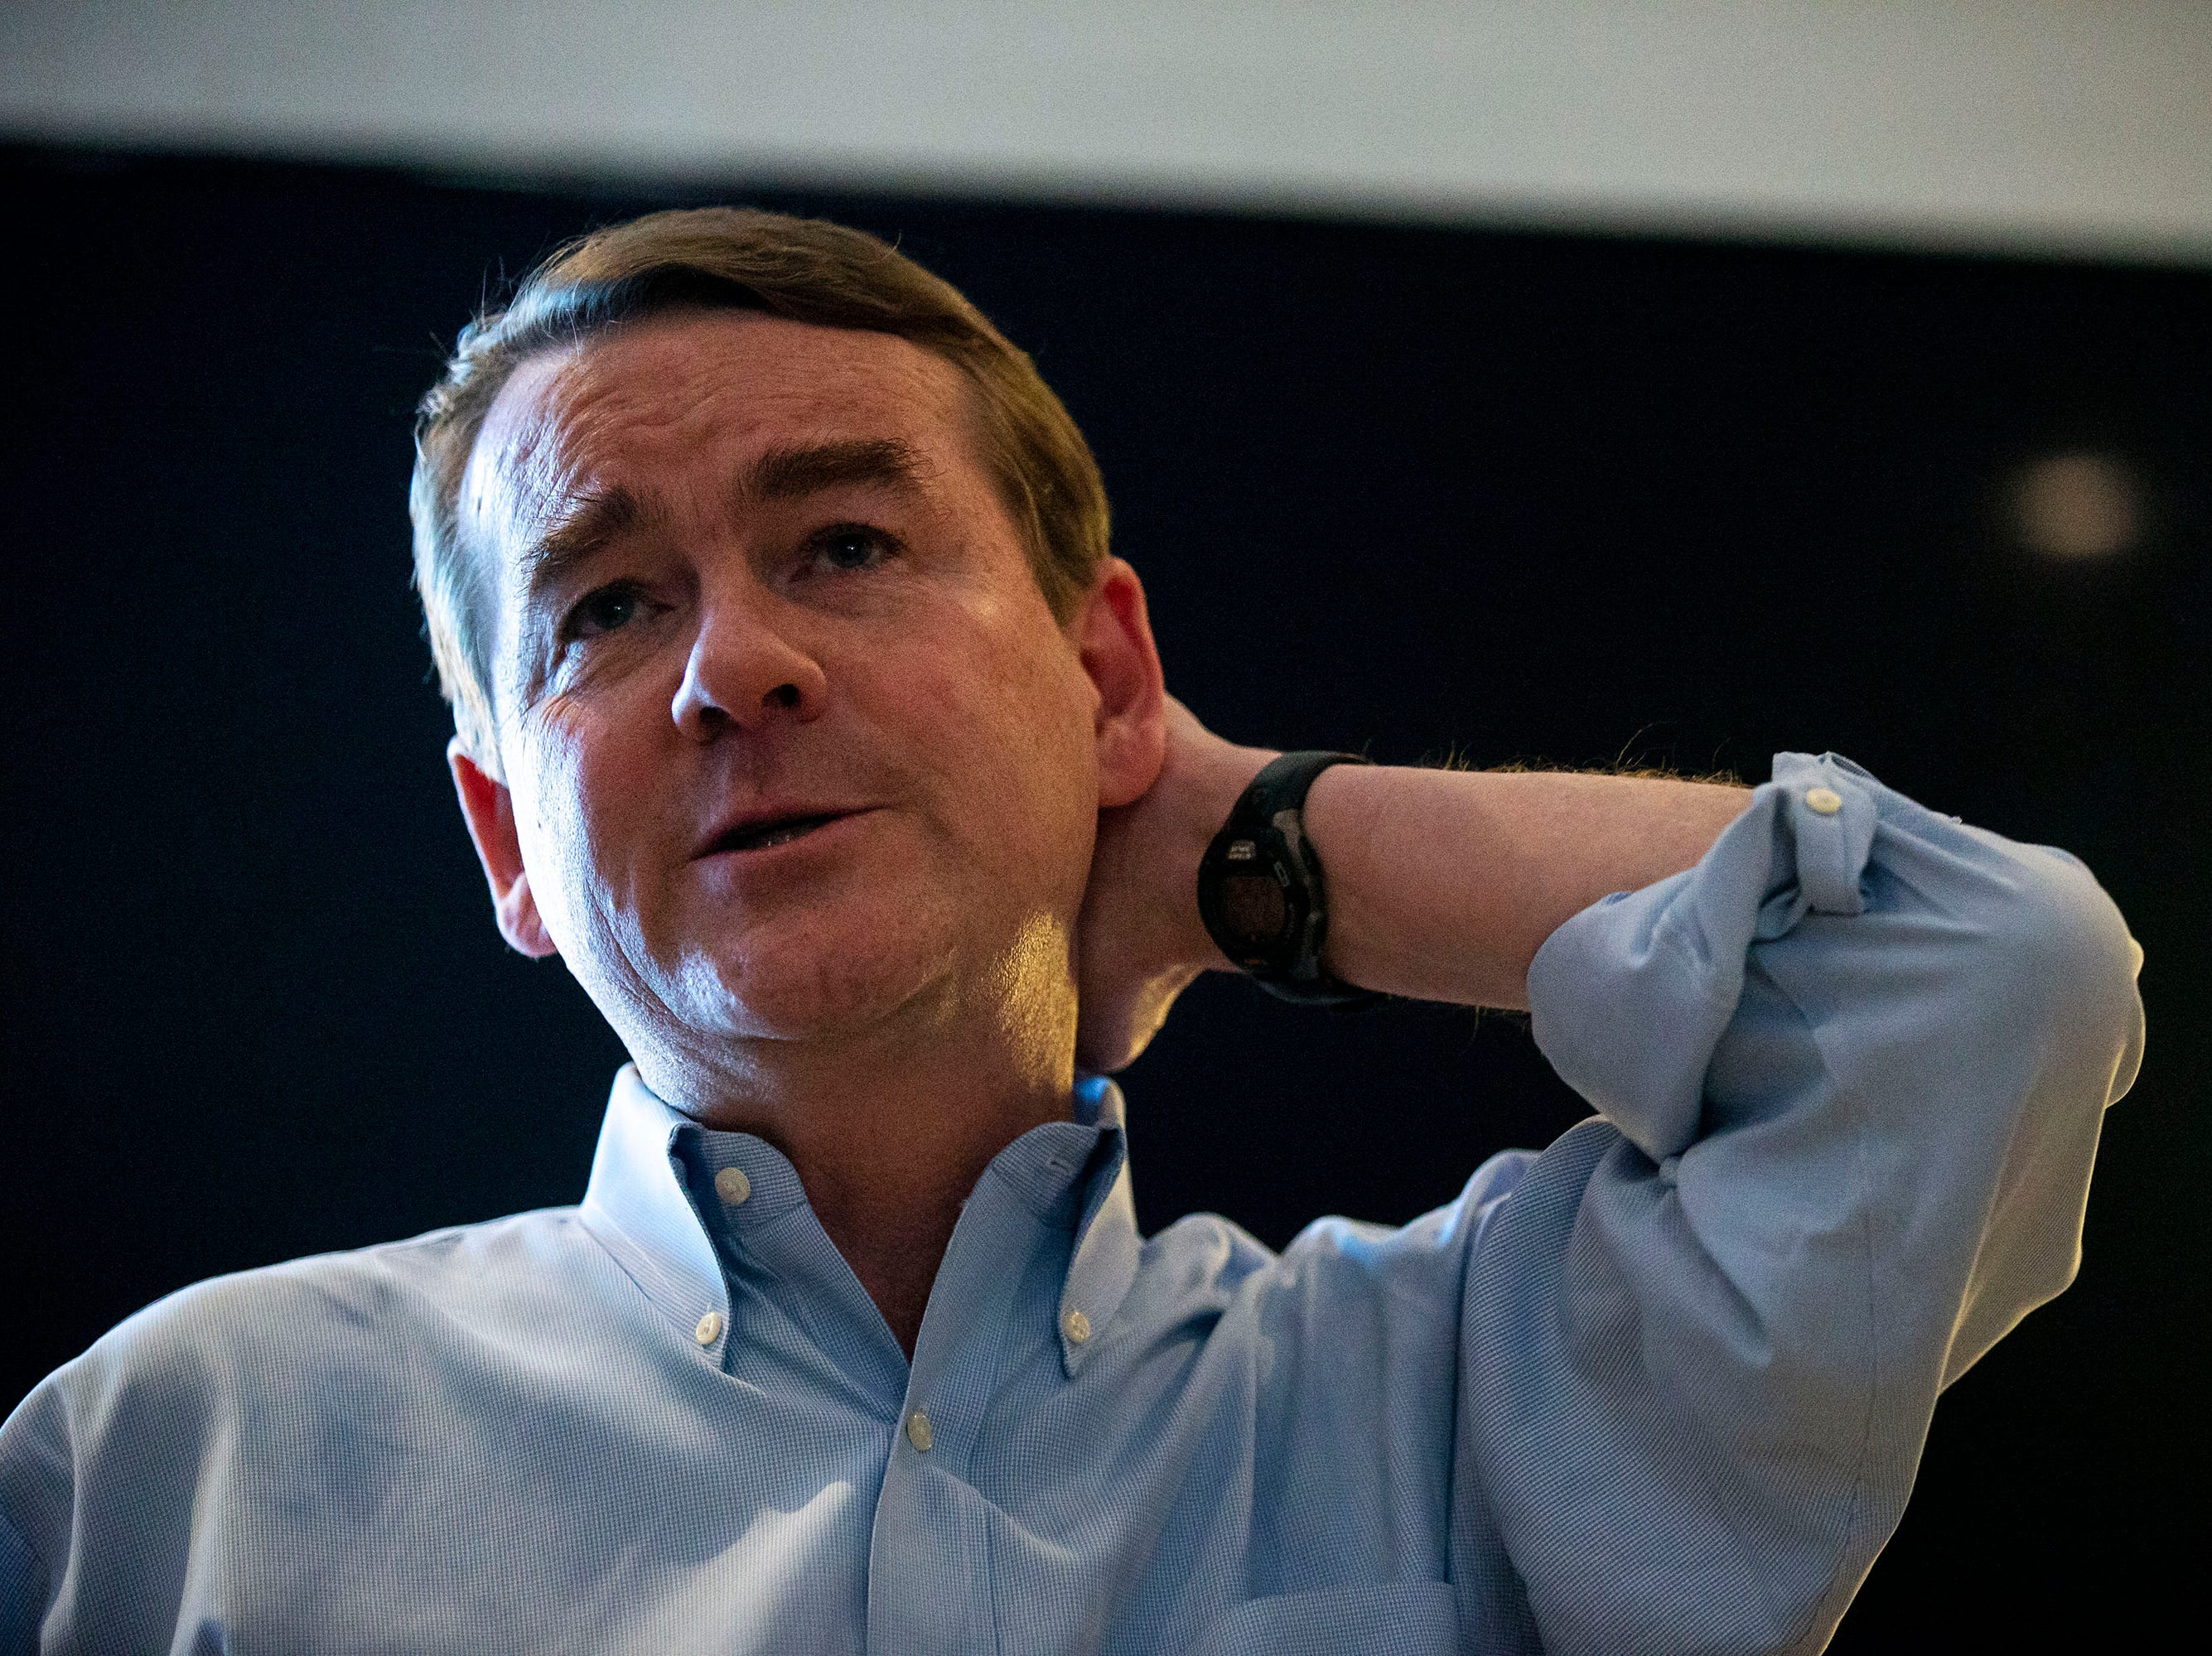 U.S. Sen. Michael Bennet, D-Colo, gives a speech and answers questions from the audience on Monday, April 8, 2019, during a meet and greet hosted by the Polk County Democrats at Teddy Maroon's in Des Moines.